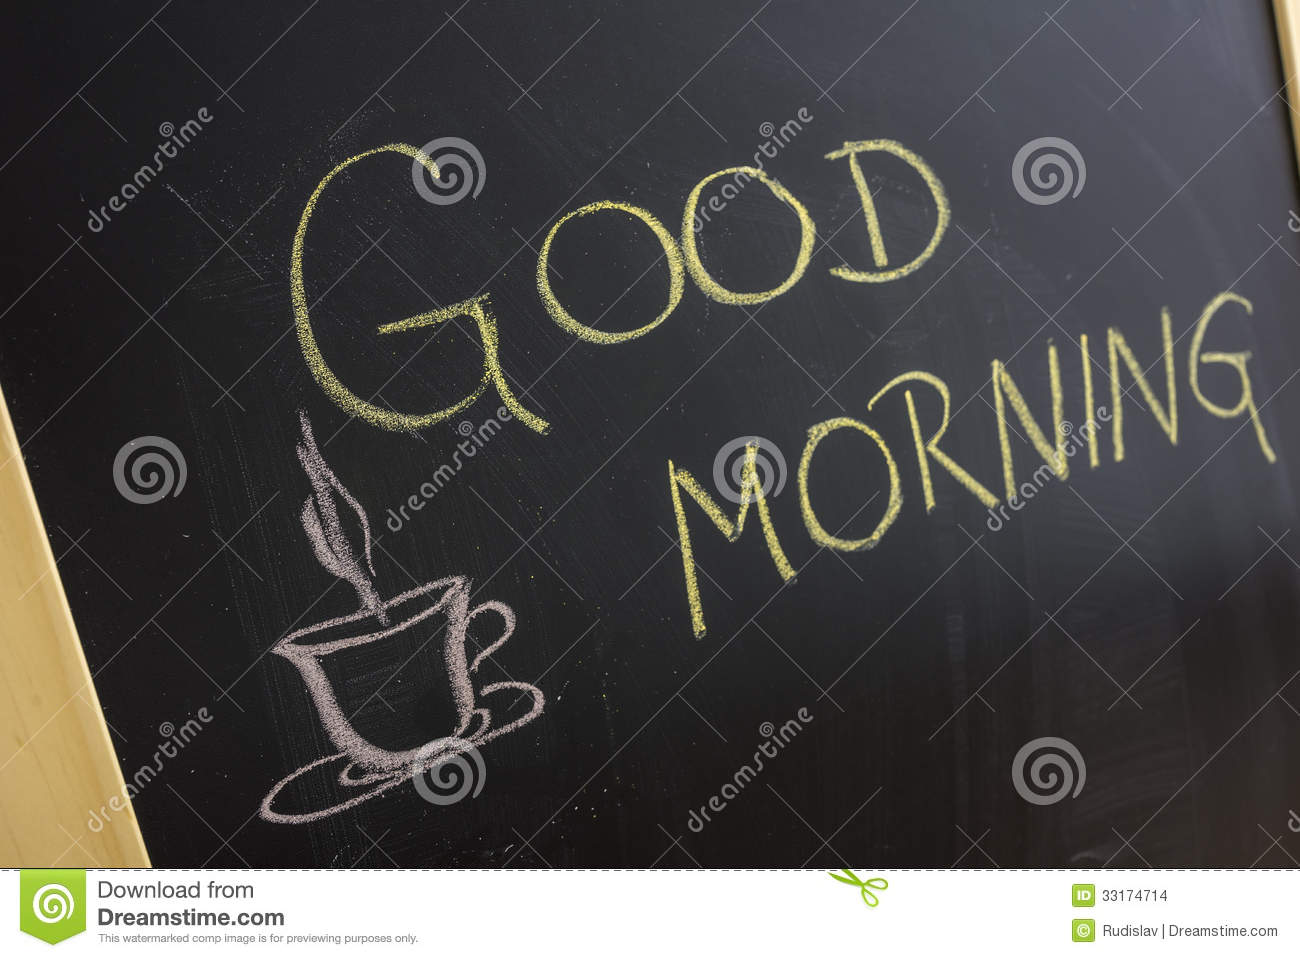 Good Morning Stock Images - Image: 33174714